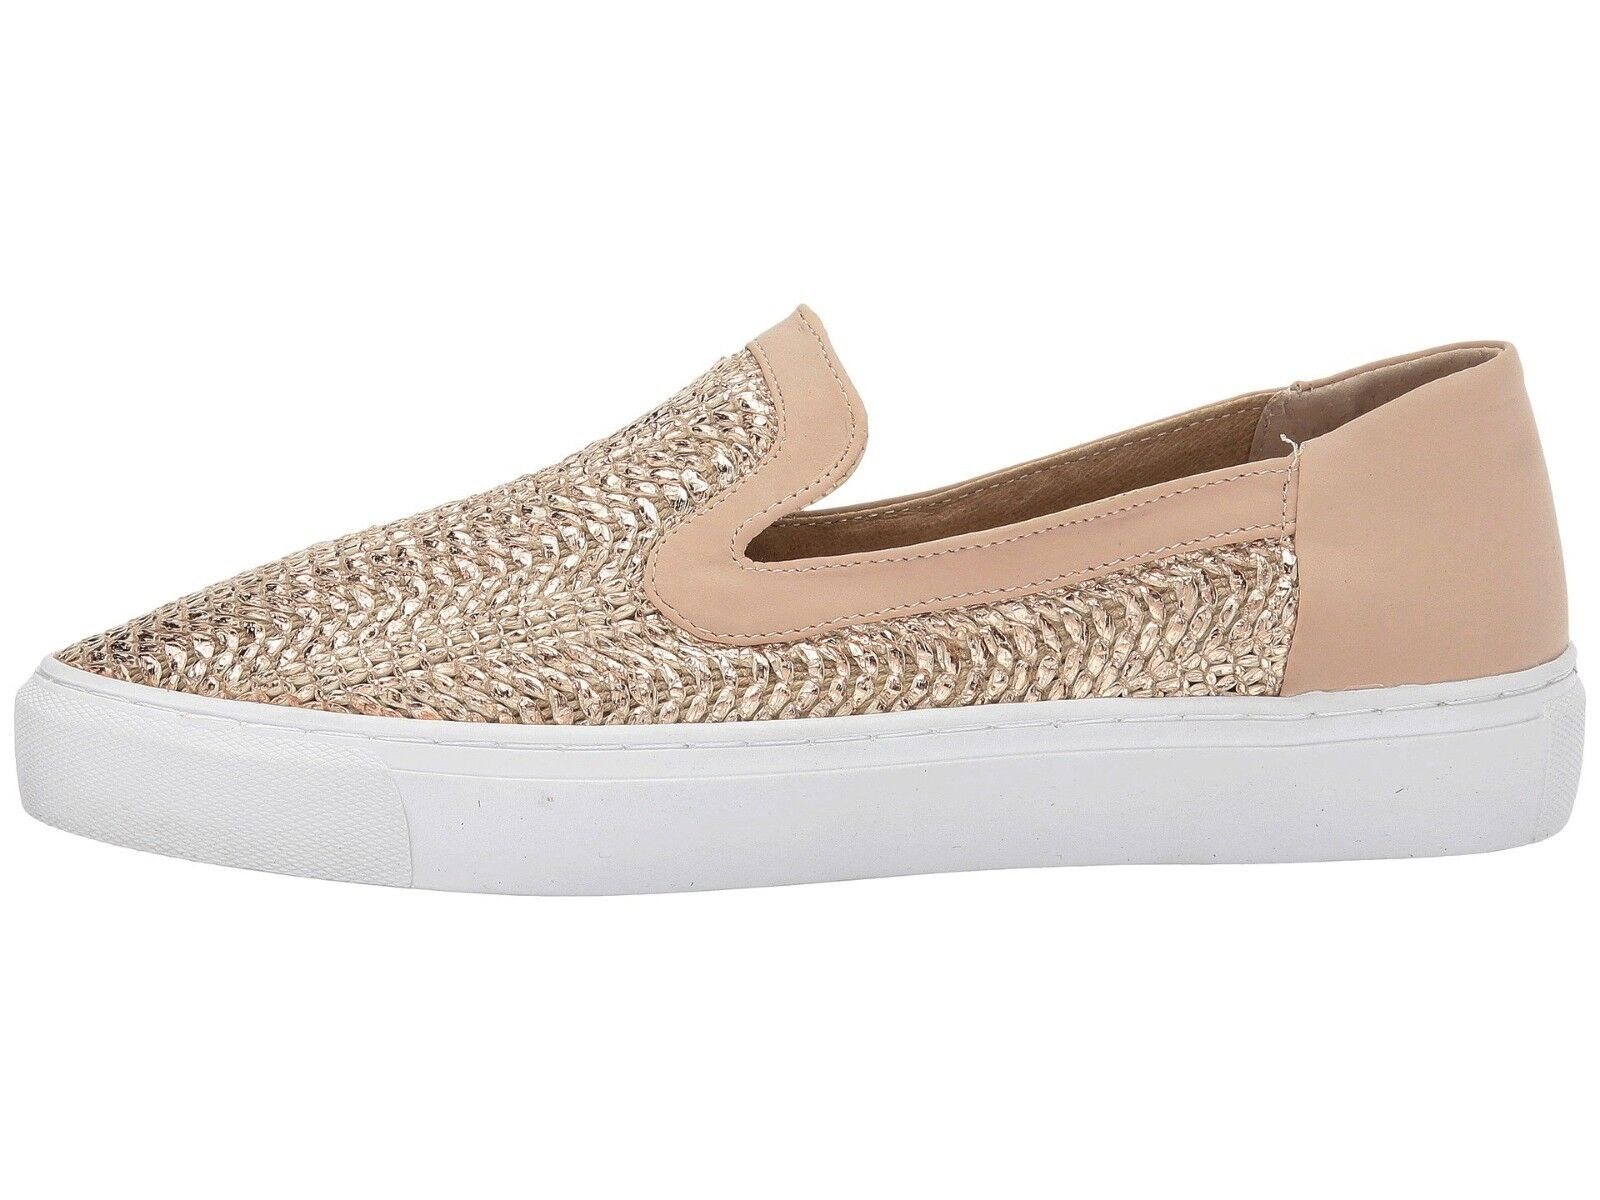 Steven Steve Madden Kenner Casual Sneaker Metallic Rose Gold Slip-On Schuhe Sz 9.5